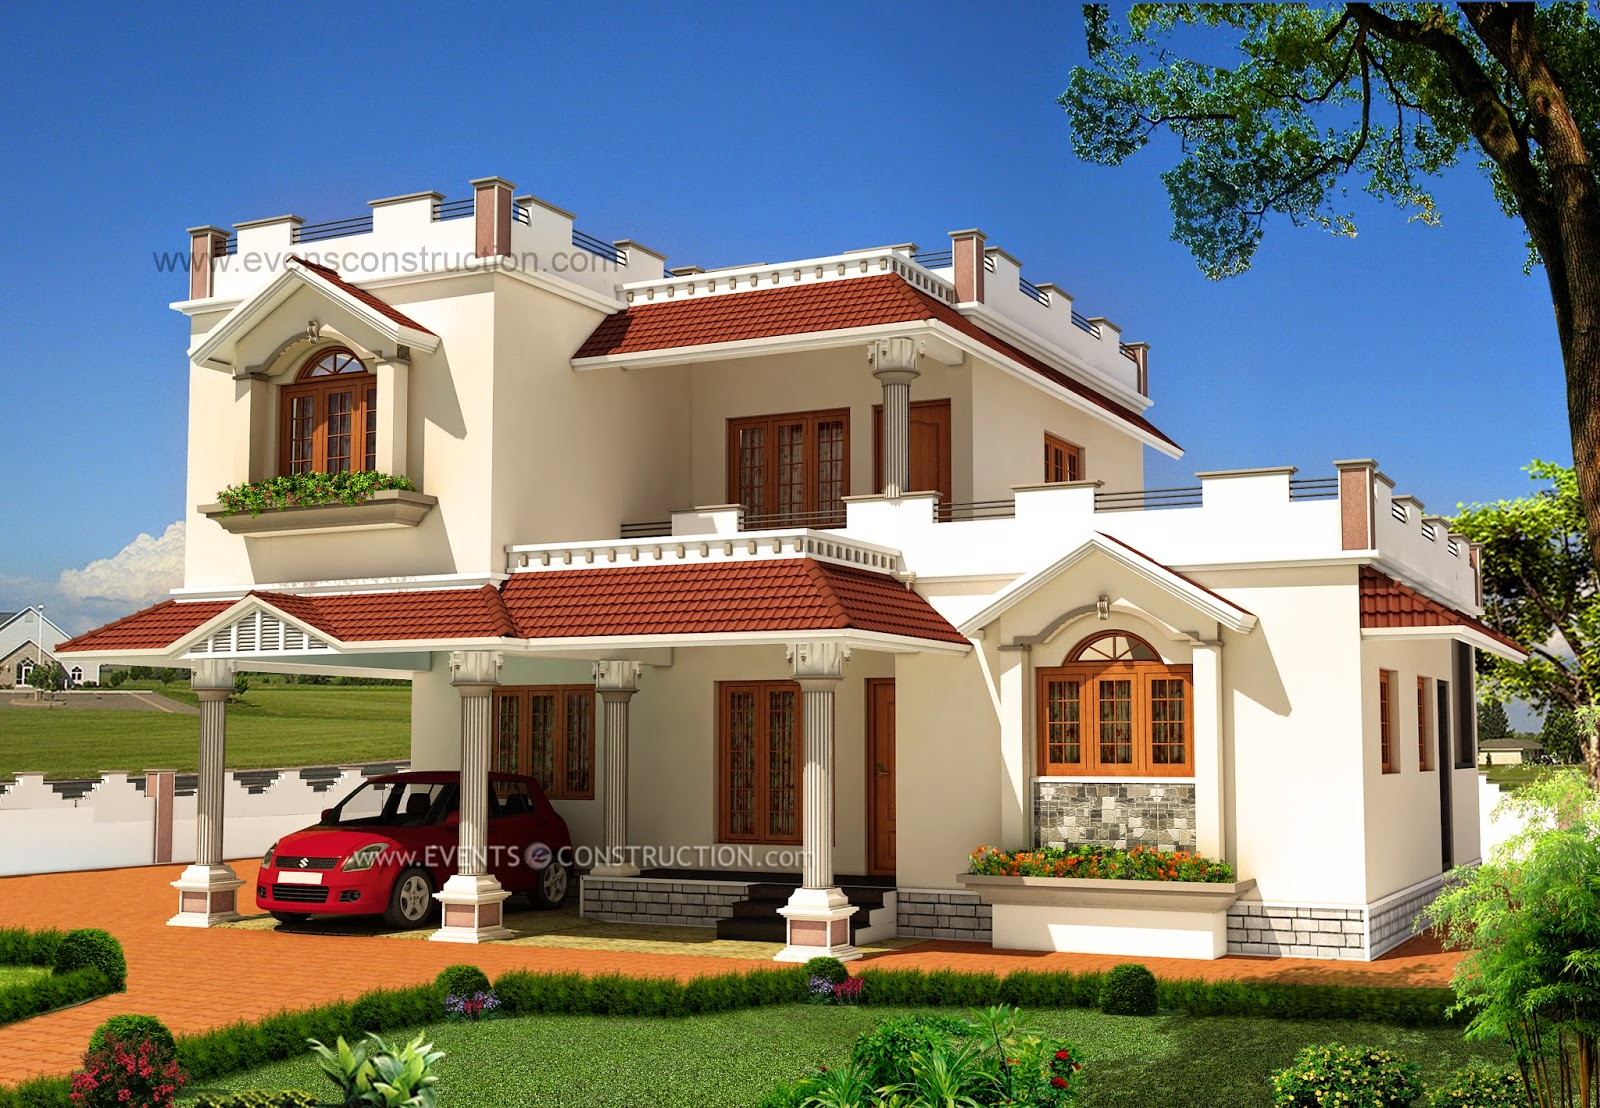 Evens construction pvt ltd september 2014 for Window design for house in india